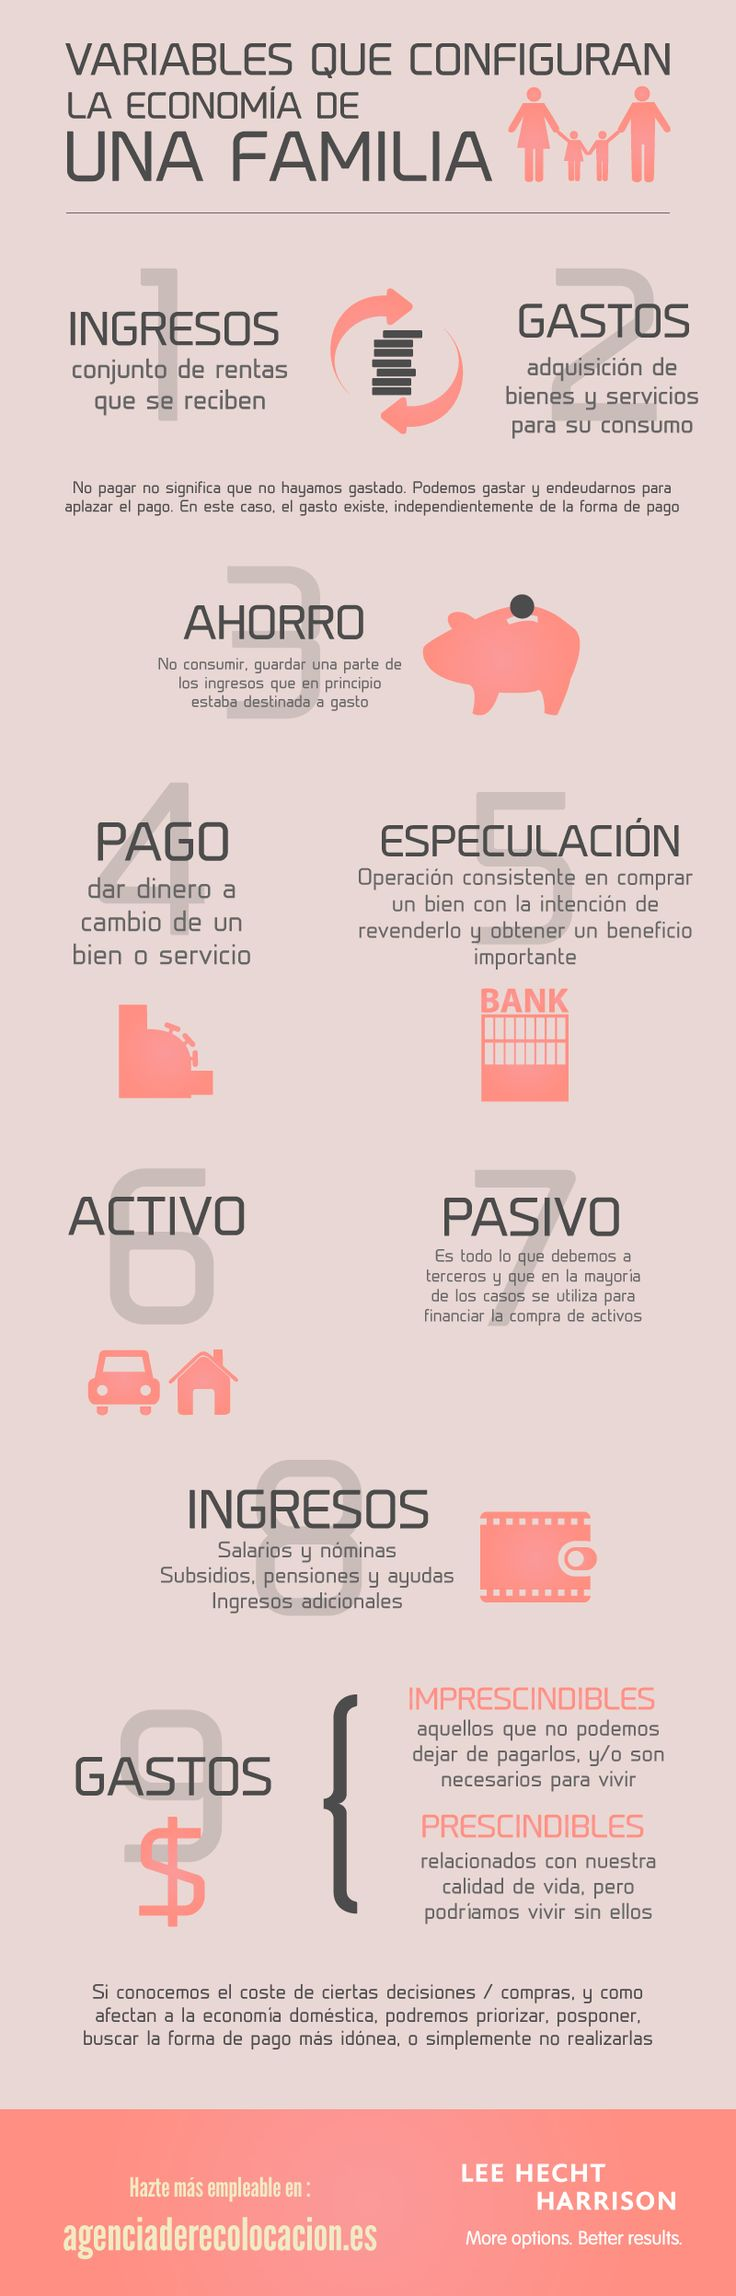 Variables de la economía familiar #infografia